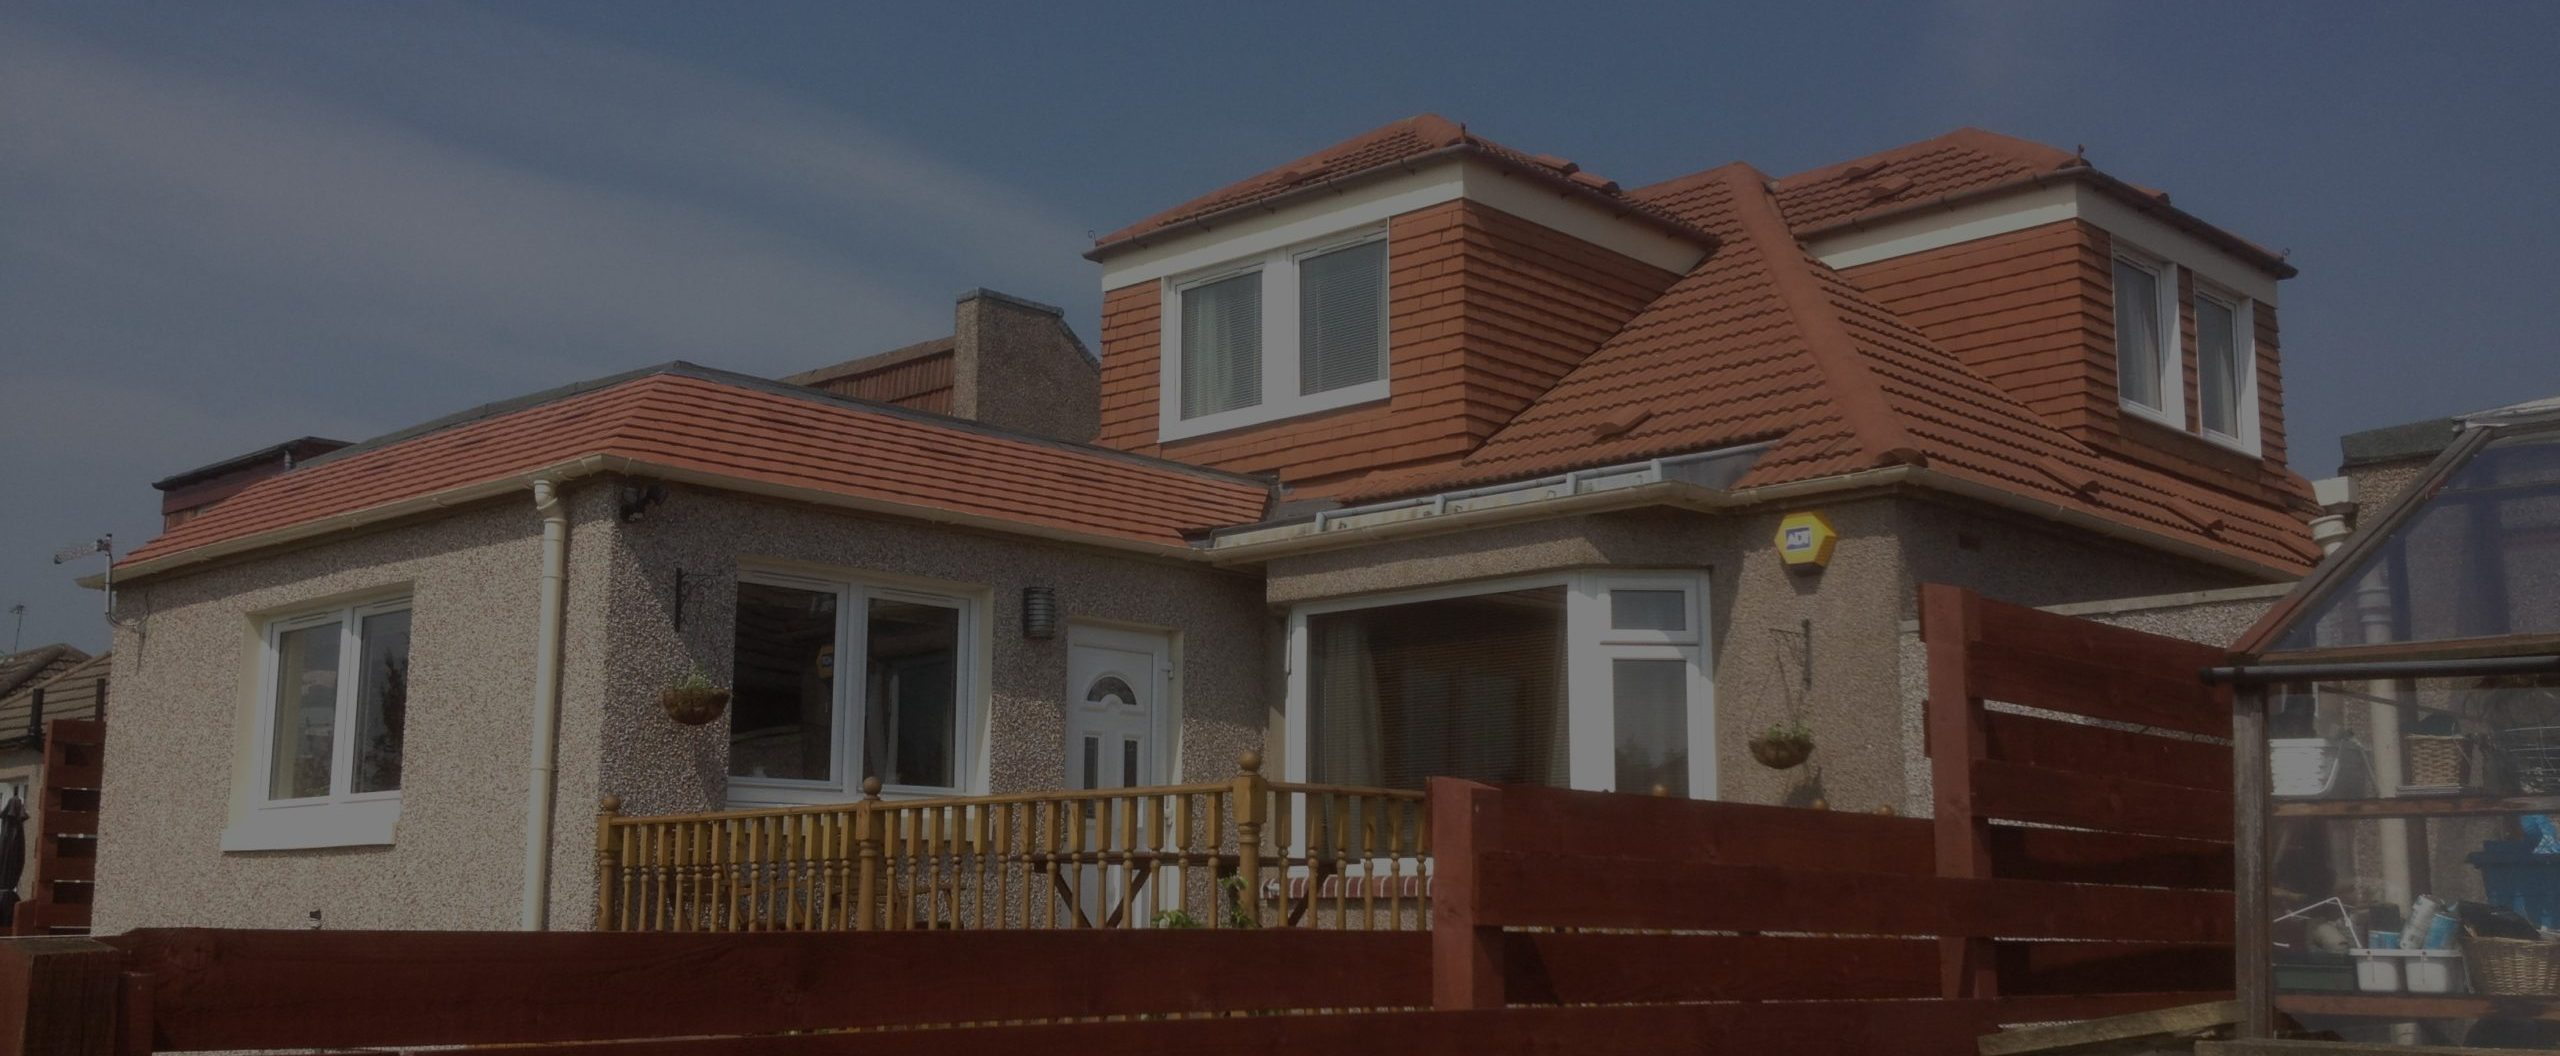 Tony McKinley specialises in building extensions, renovation, refurbishment and loft conversions